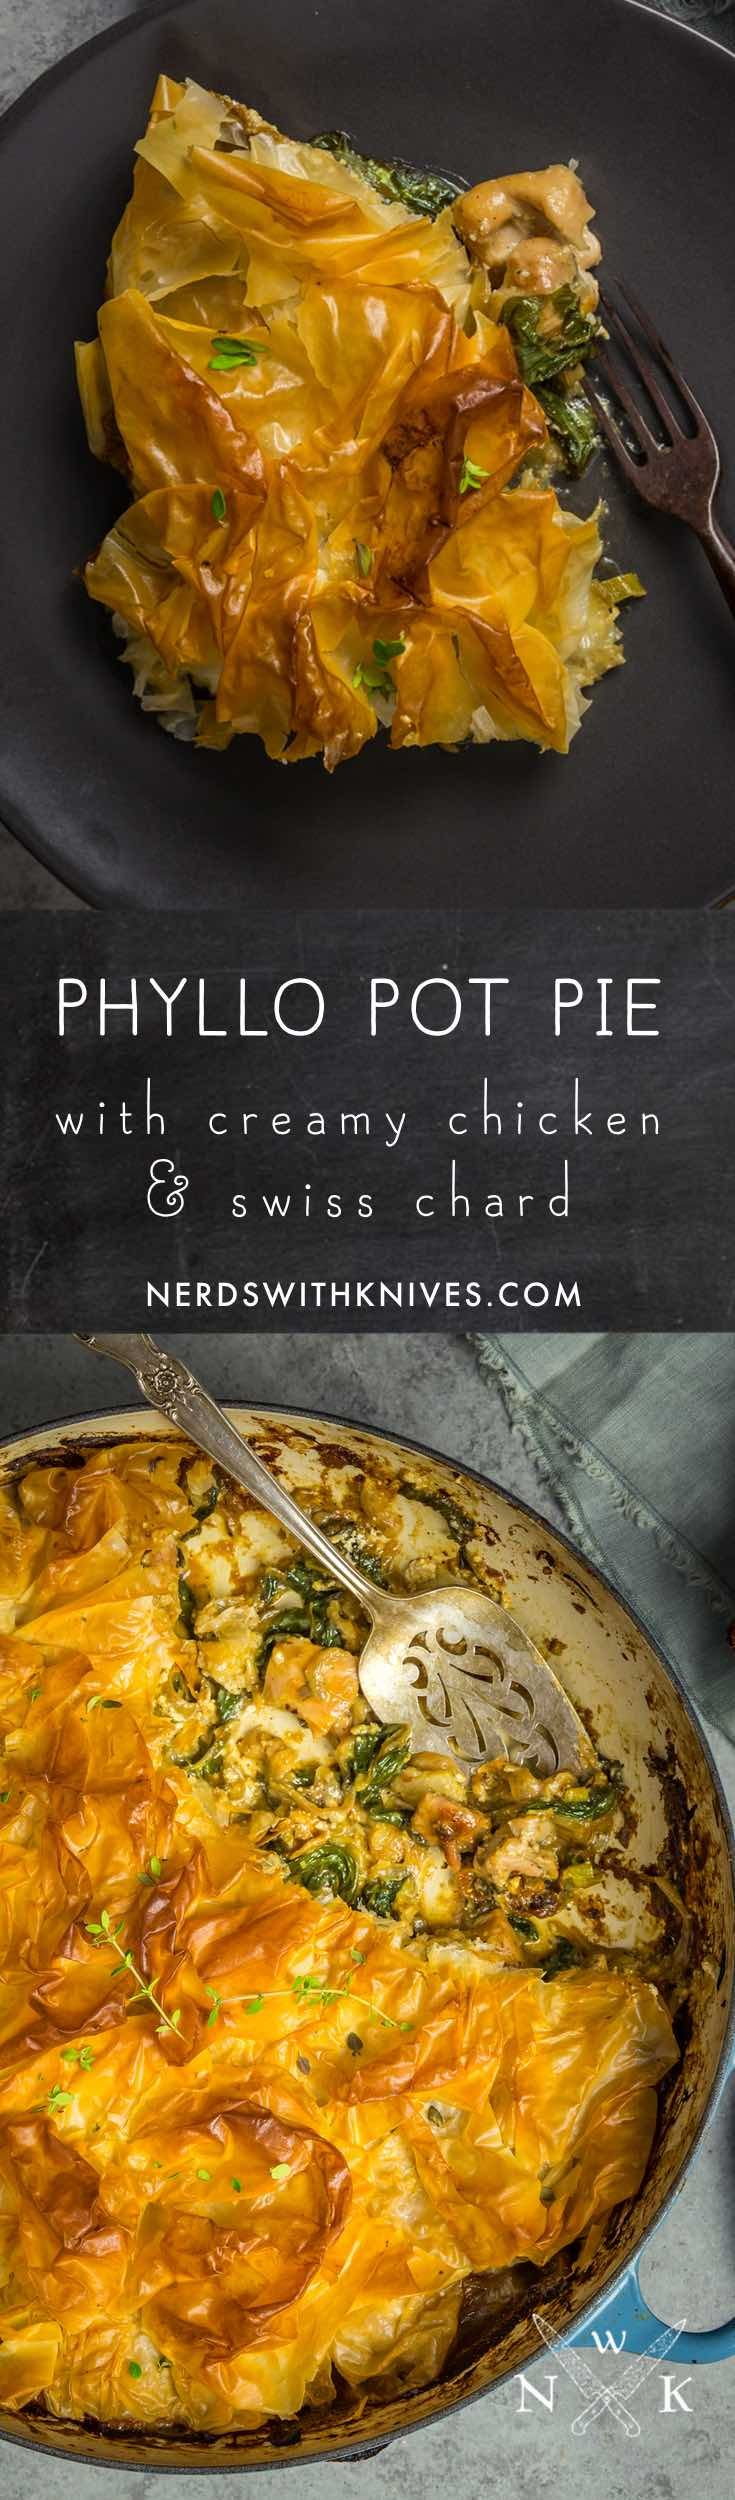 Tender chicken, caramelized onions and Swiss chard in a creamy garlic sauce, topped with a blanket of buttery, flaky, ultra-crisp phyllo dough. This is comfort food pretty enough for the fanciest dinner party, but tasty enough for a relaxed family meal.